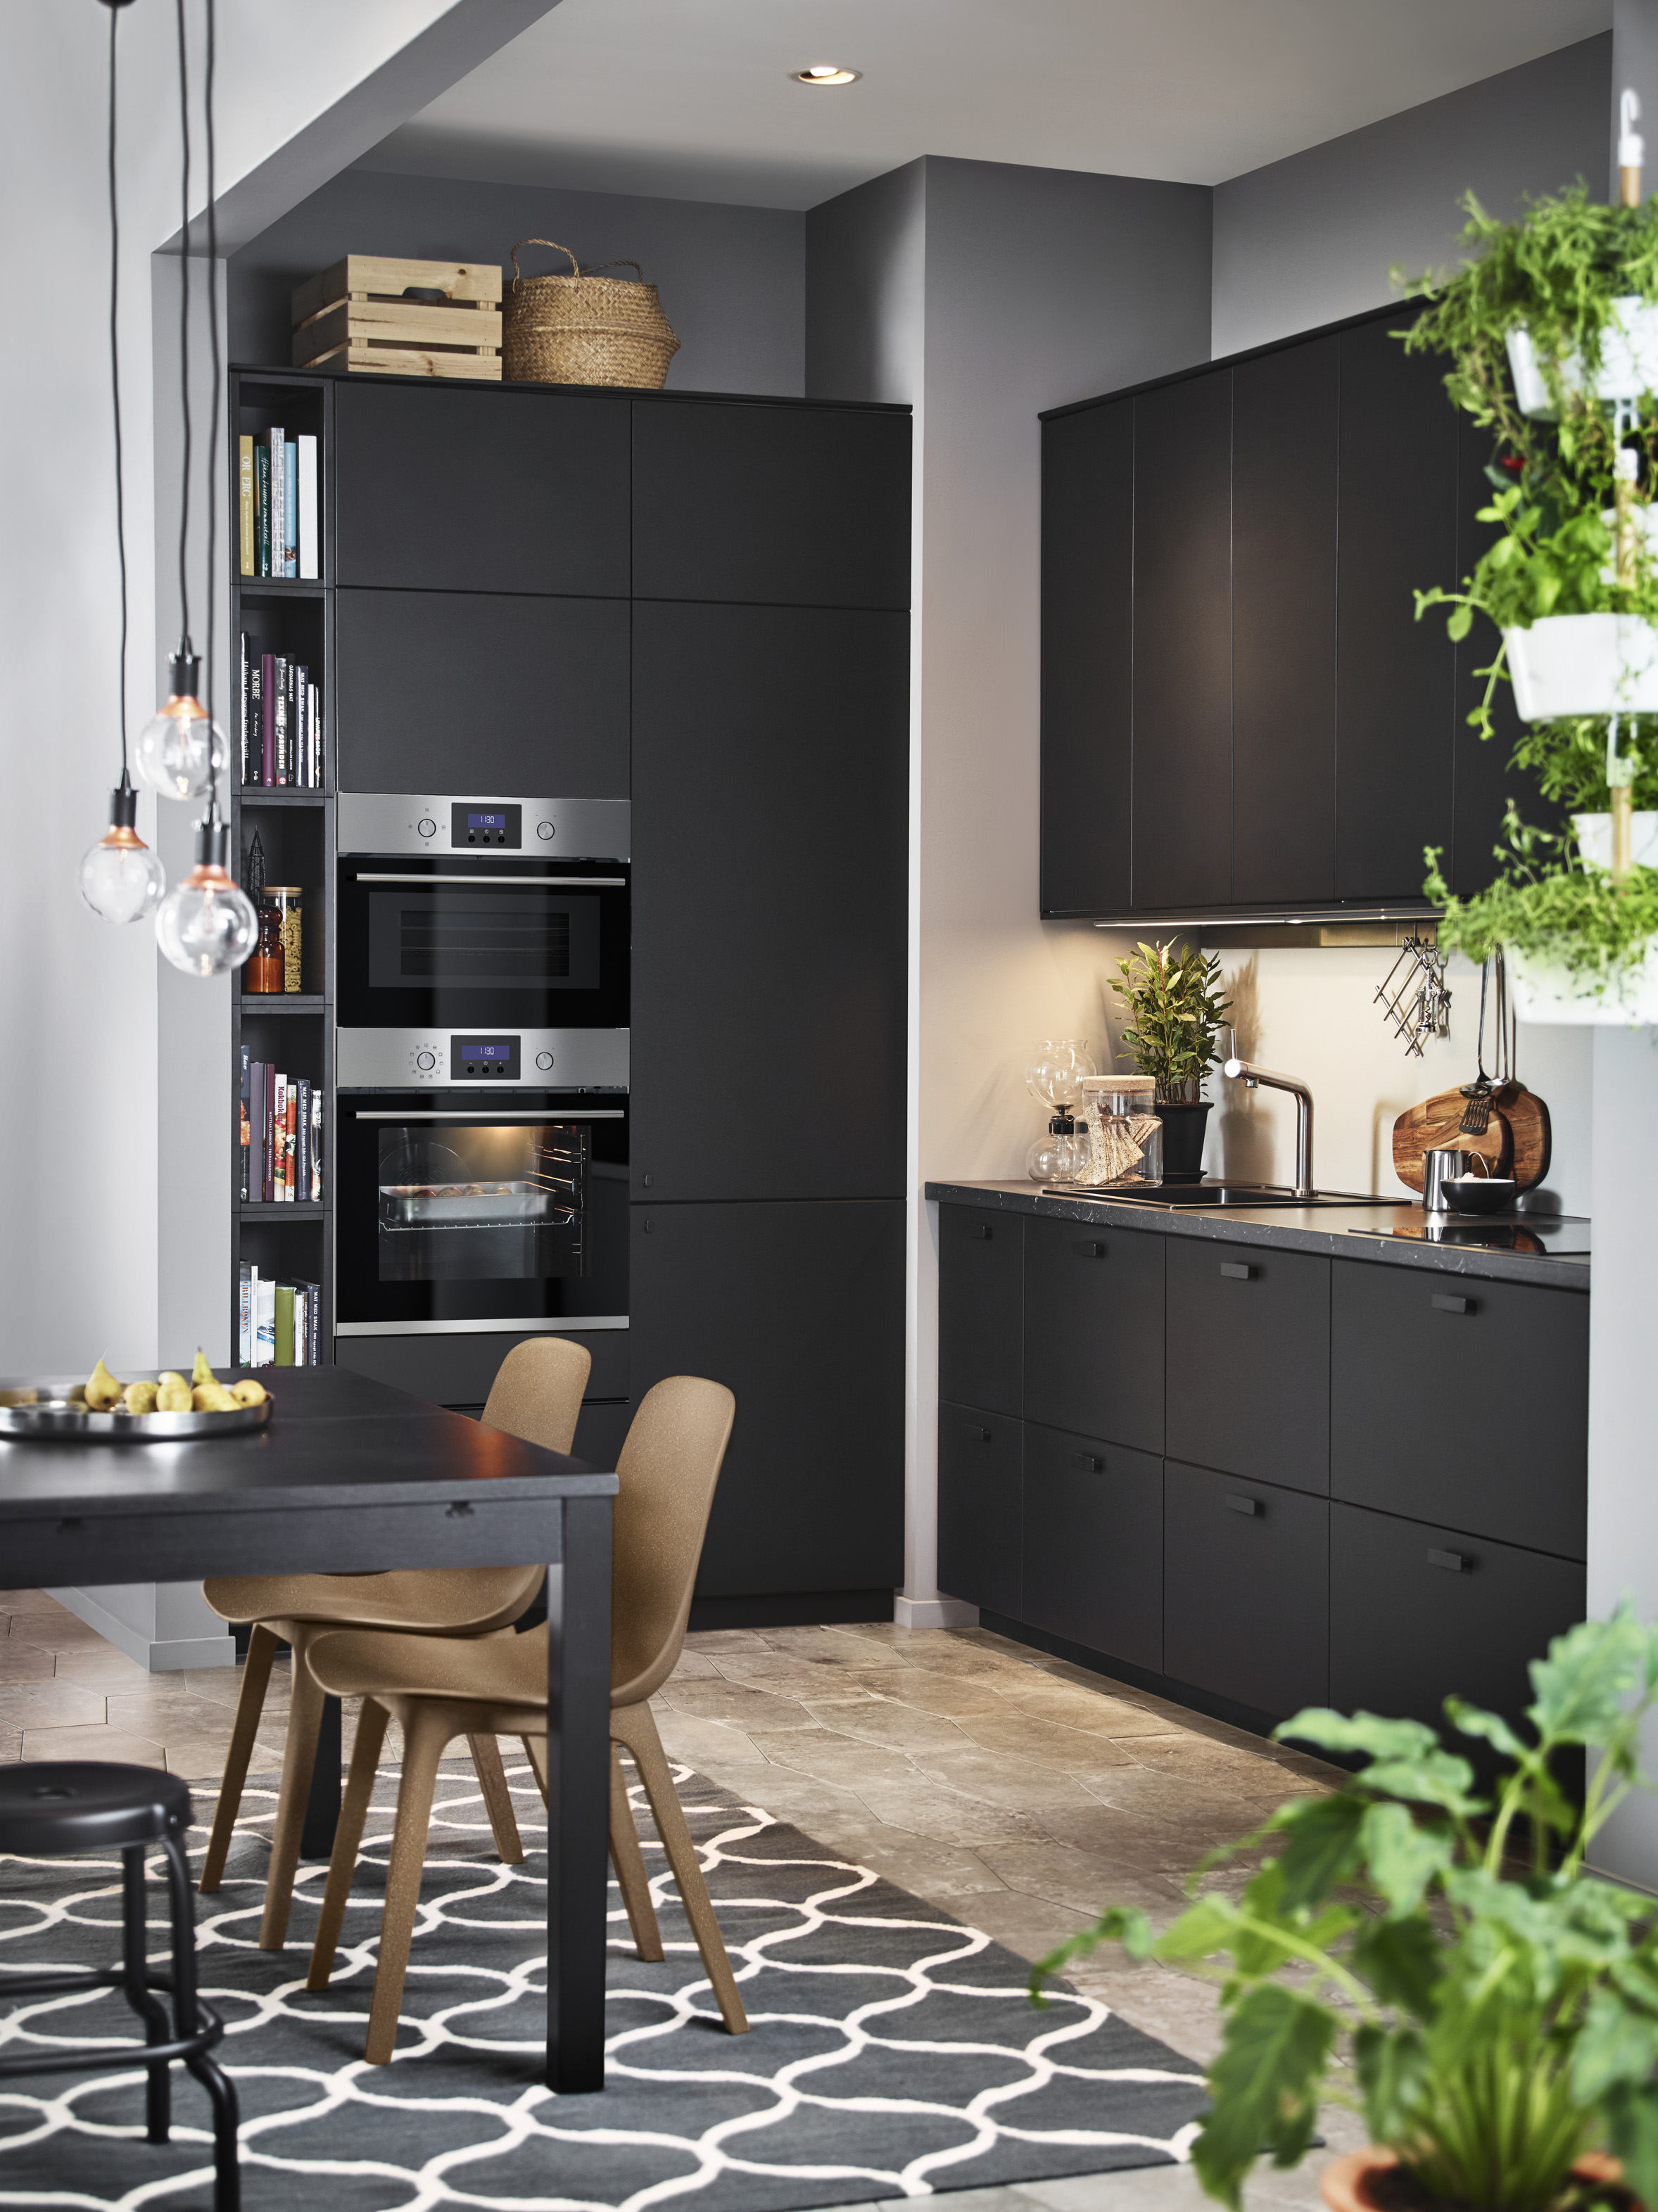 Kungsbacka kitchen cabinet doors are made from recycled wood and covered with a foil made from recycled plastic bottles. Doors start from £18, Ikea (Ikea/PA)